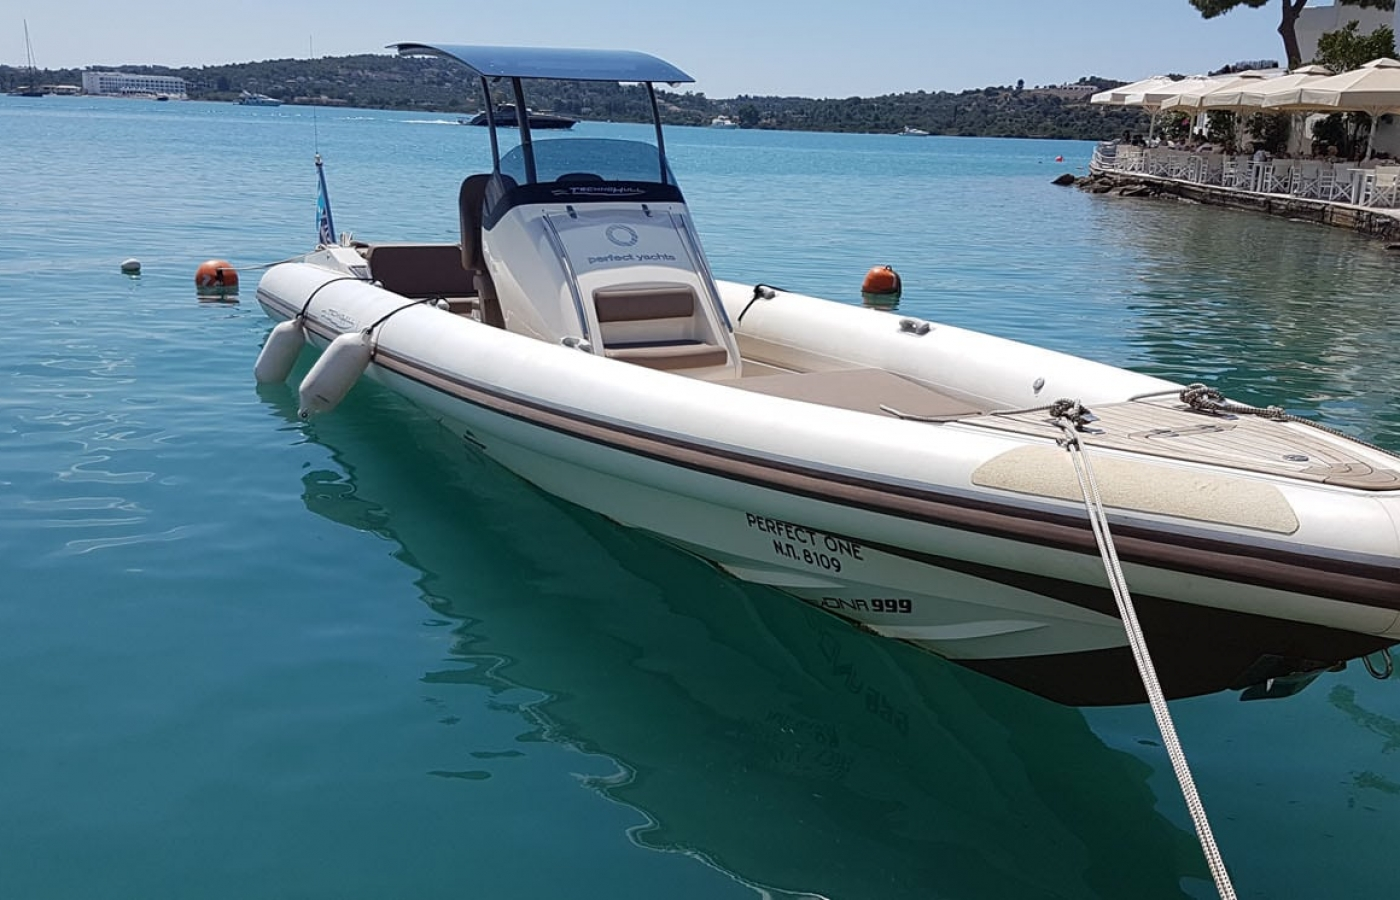 Technohull Sea DNA 999 G5- Perfect One available to charter